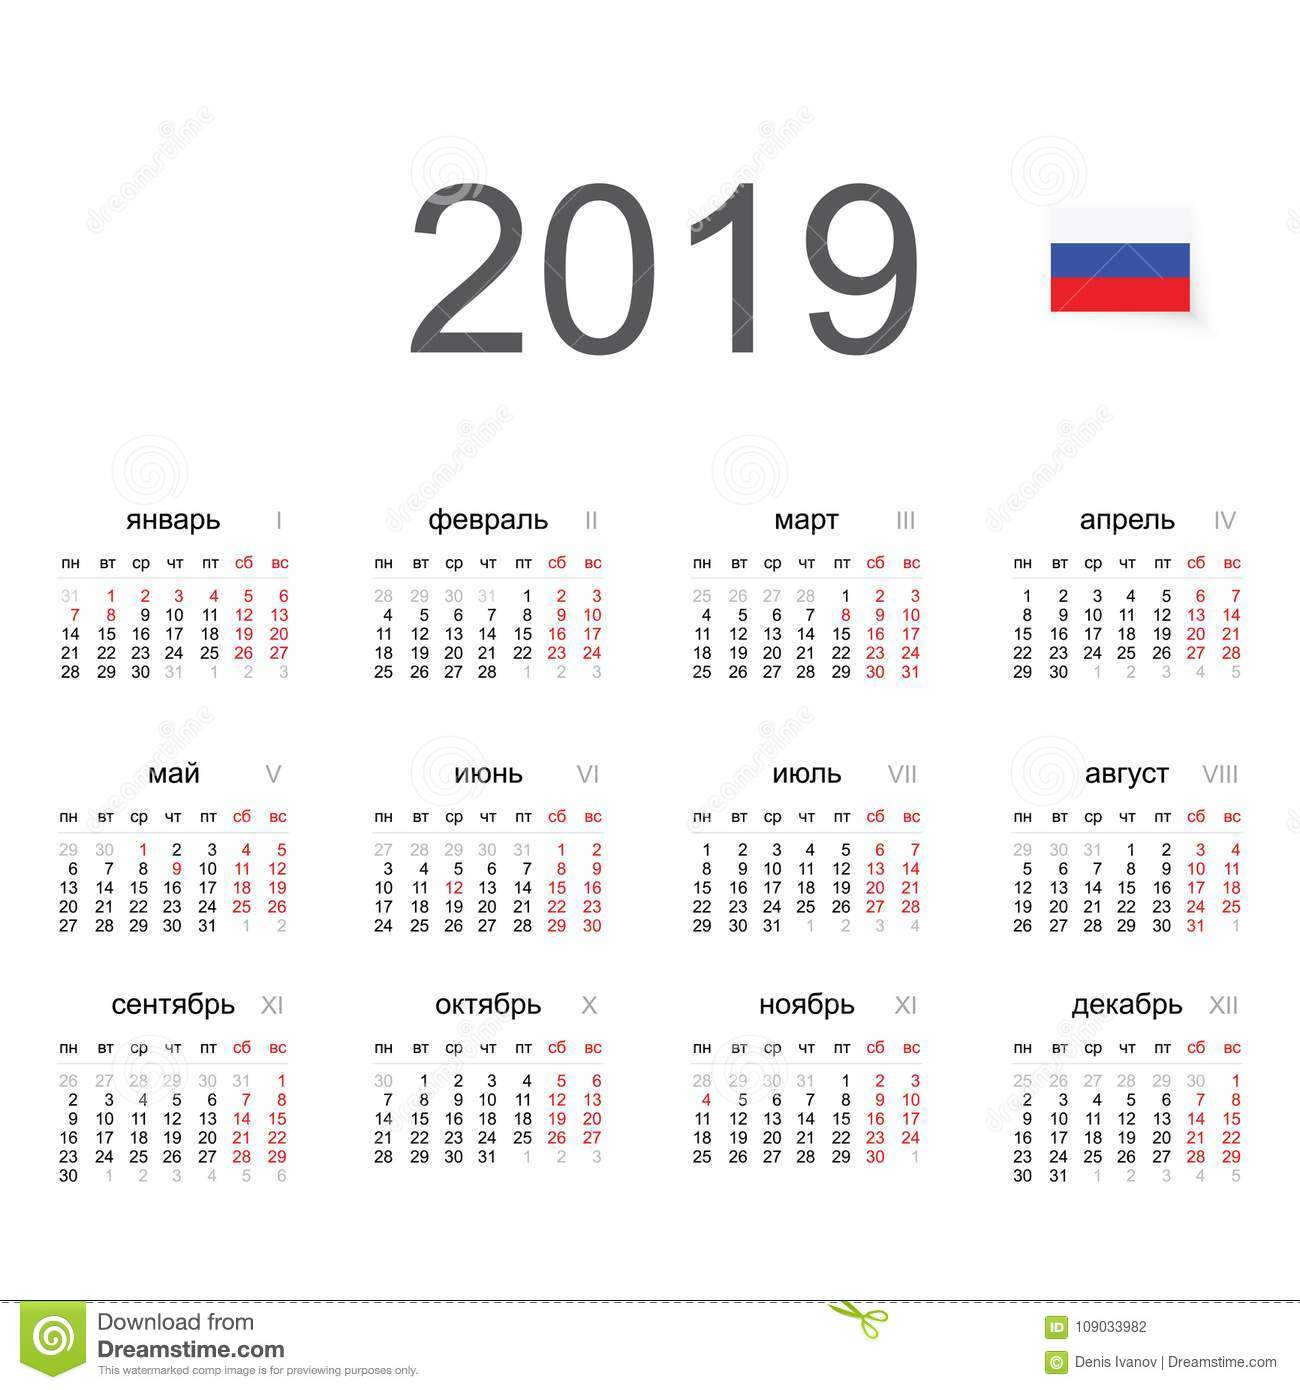 Vector Circle Calendar 2019 Written In Russian Names Of The Months January February Etc And The Days Of The Week Monday Tuesday Etc